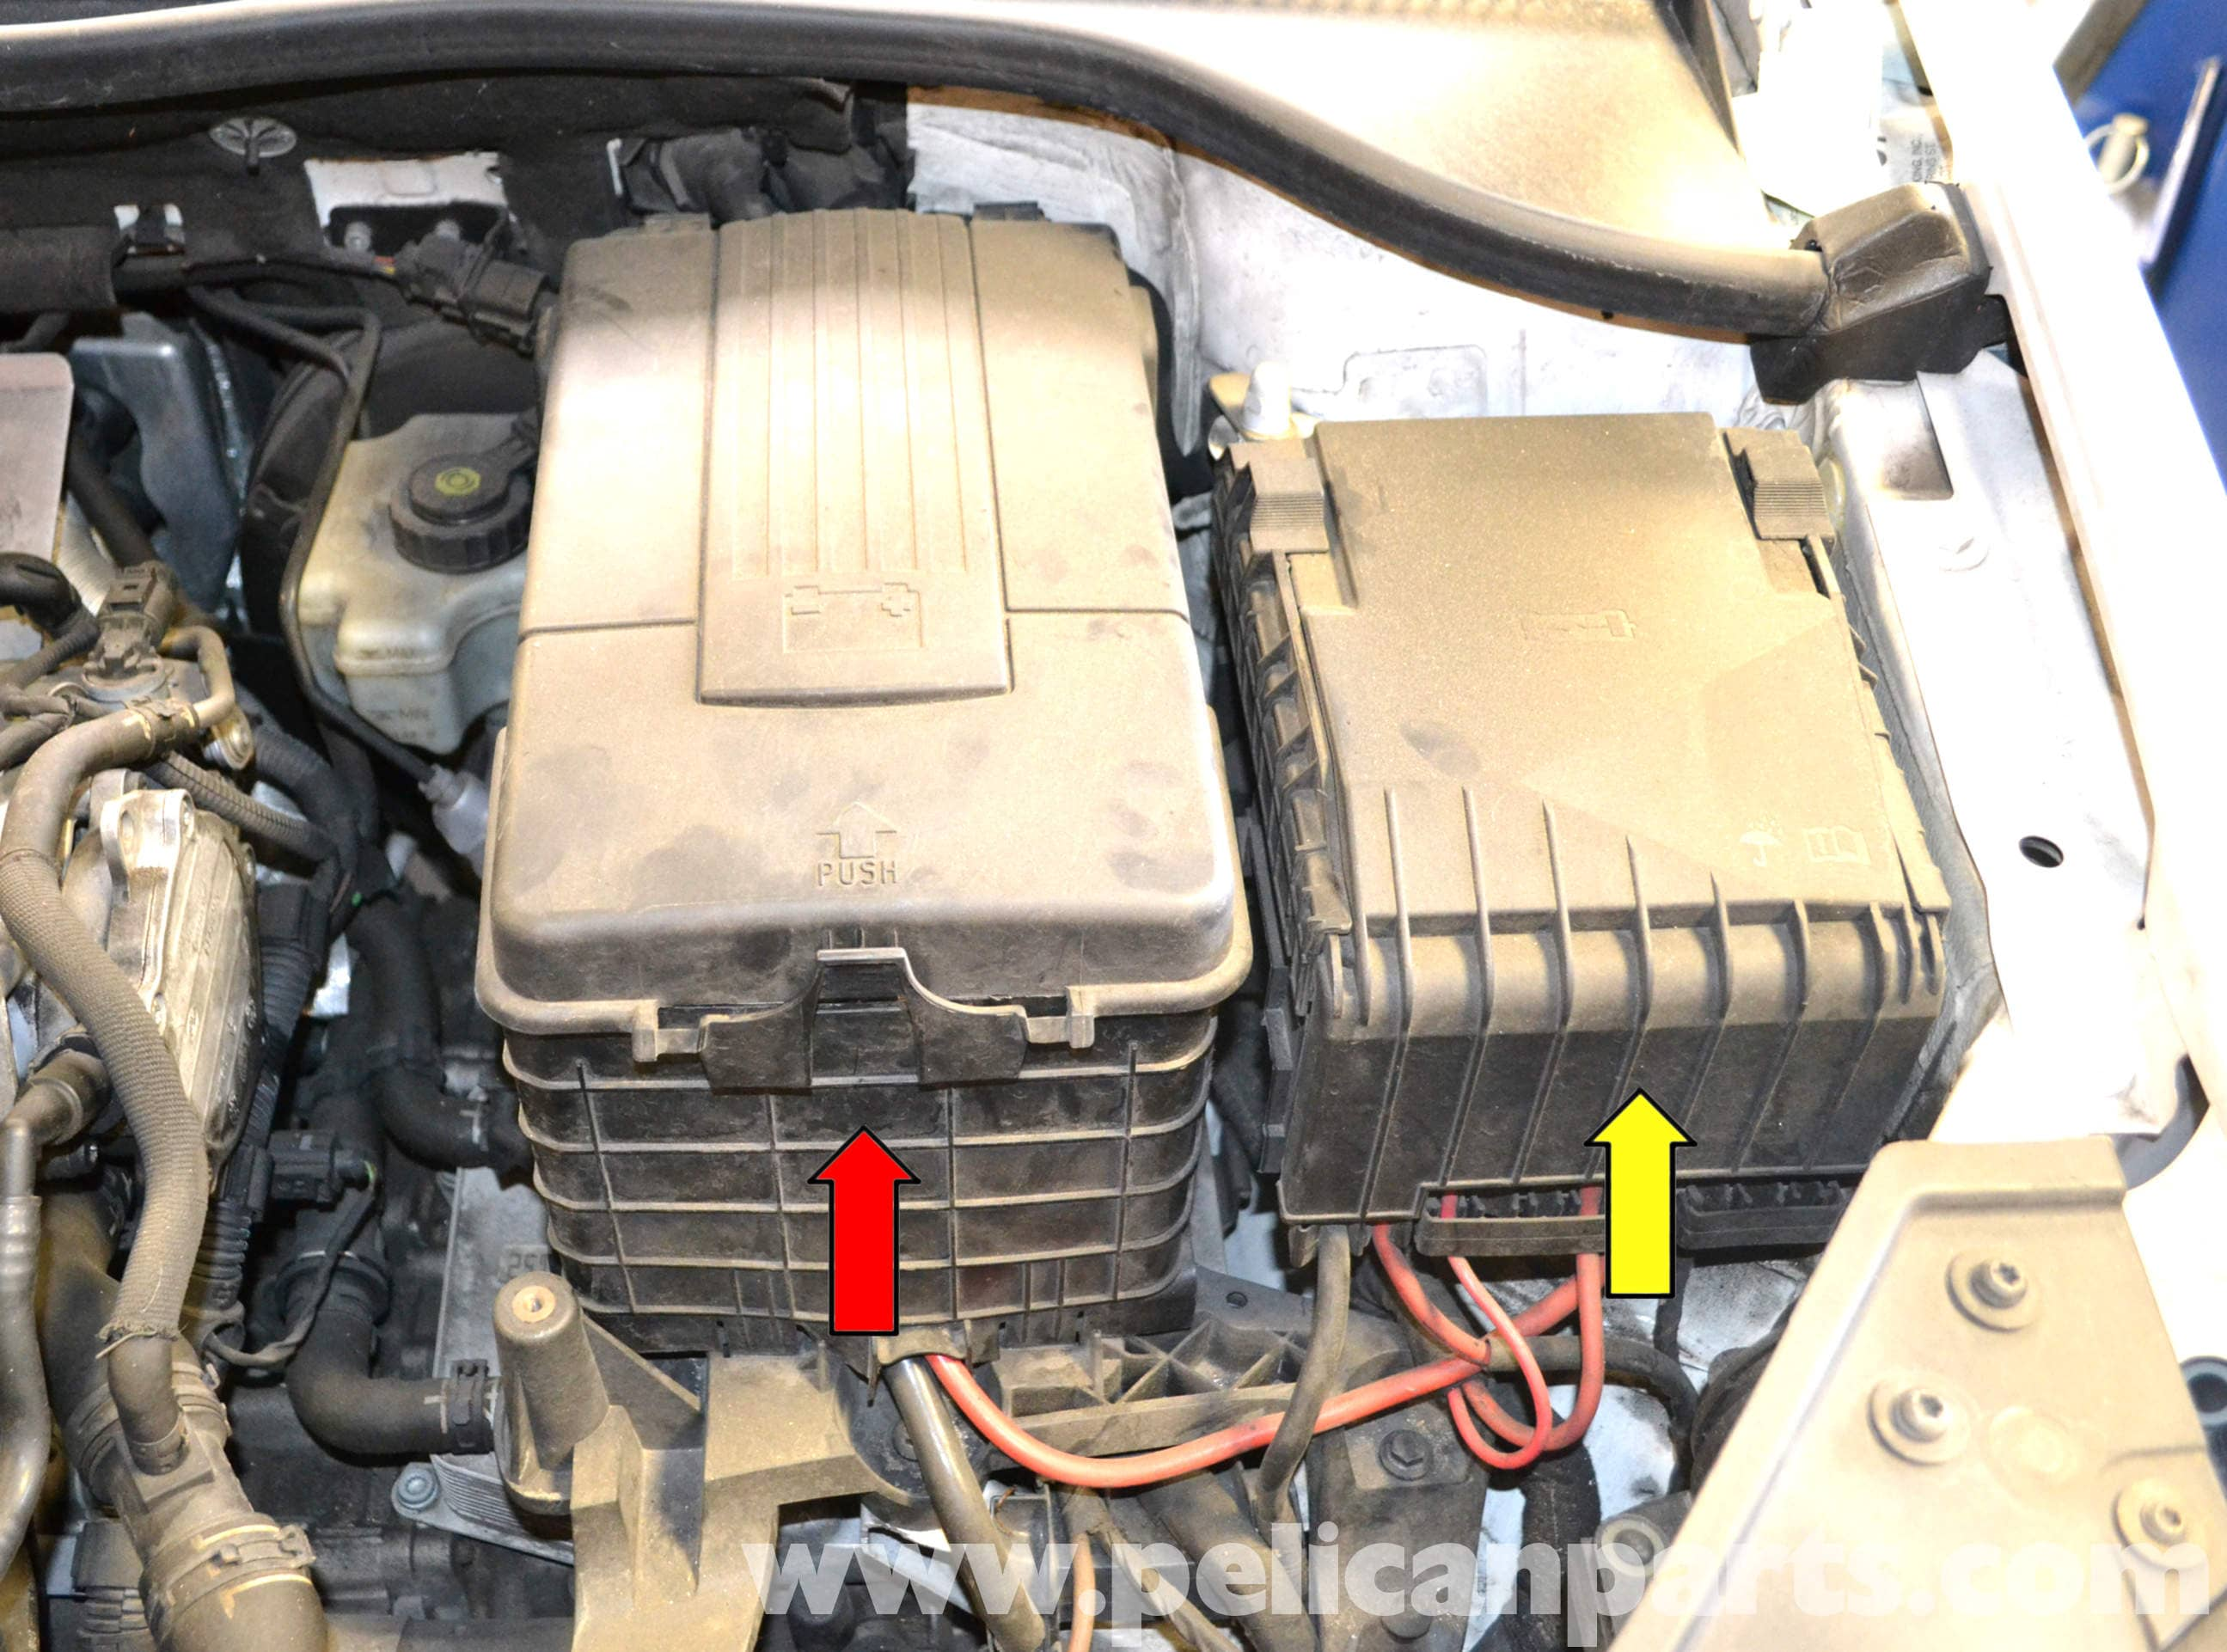 Volkswagen Golf GTI Mk V Battery Replacement and Connection